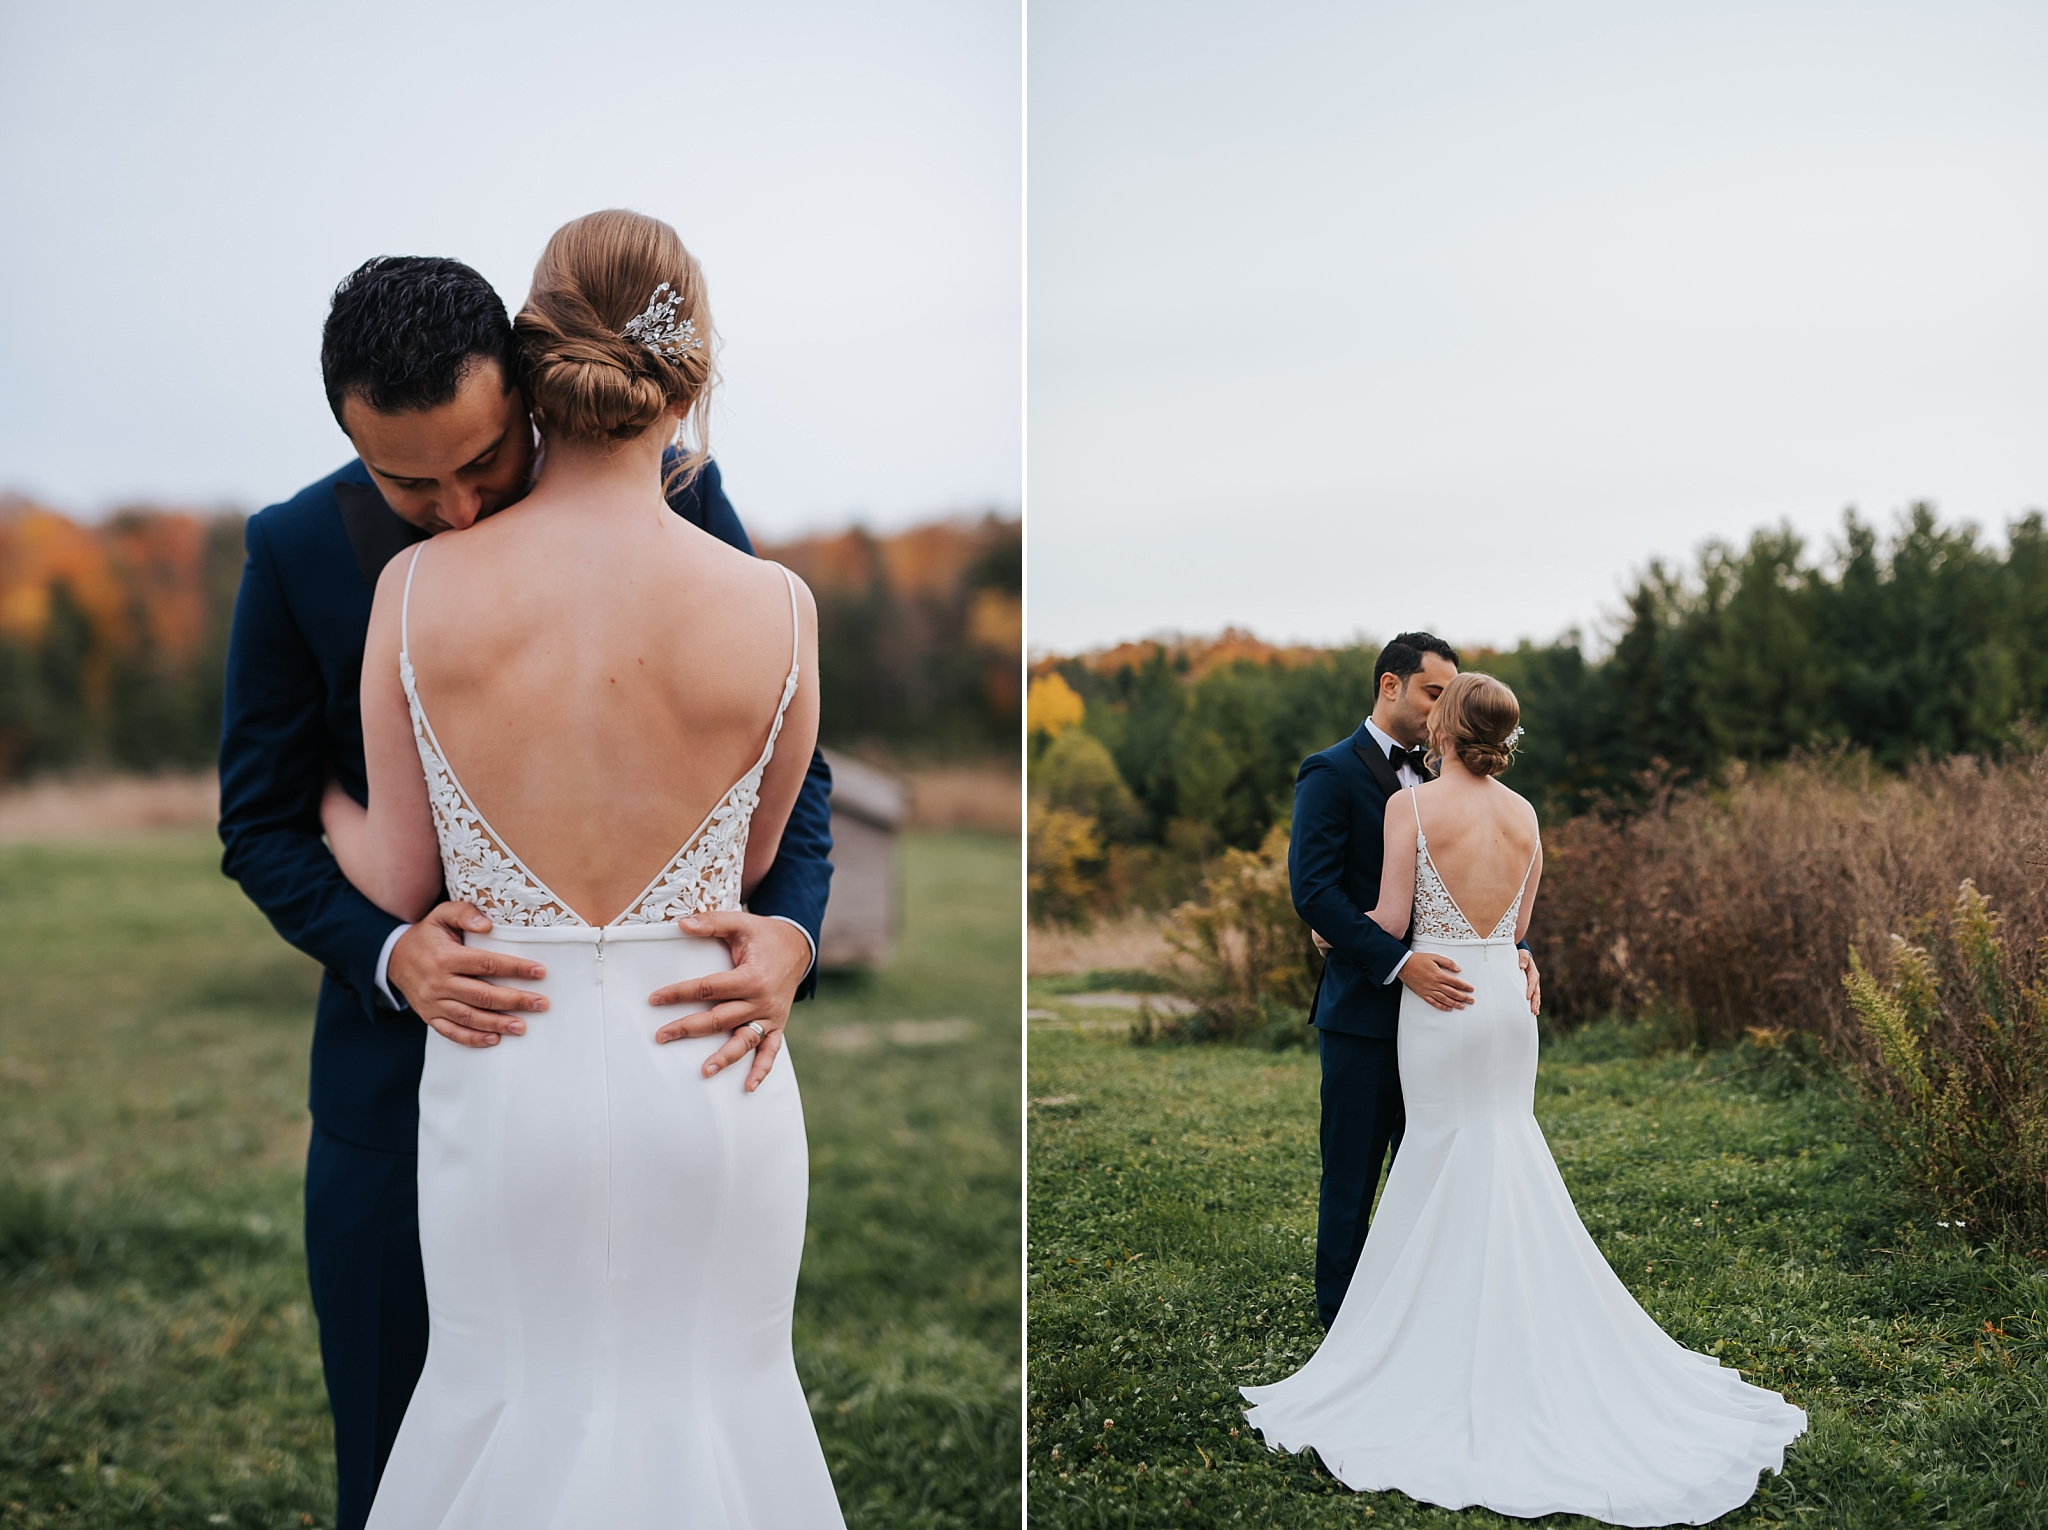 Waterstone Estate & Farms Wedding - bride and groom embrace